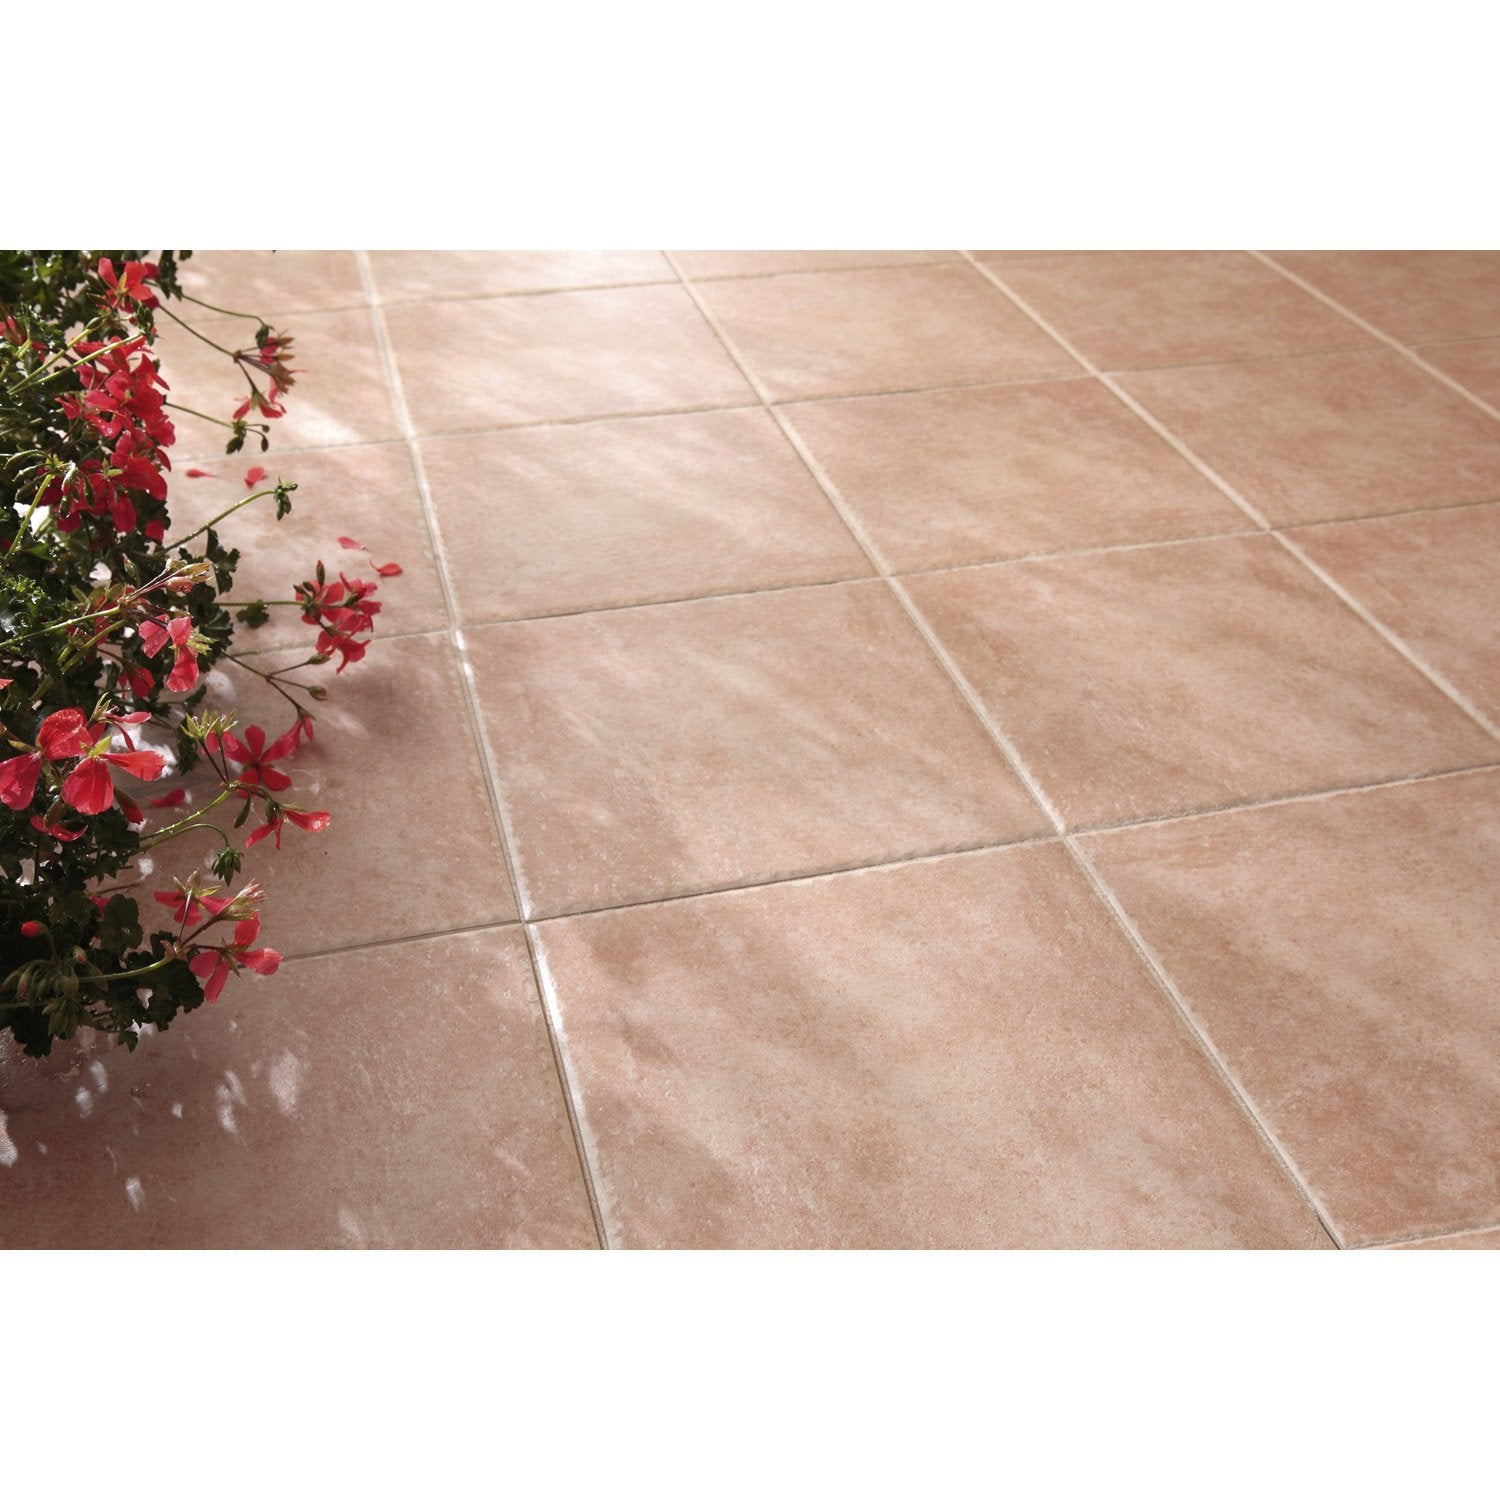 Carrelage sol rose effet pierre michigan x cm - Separation parquet carrelage ...